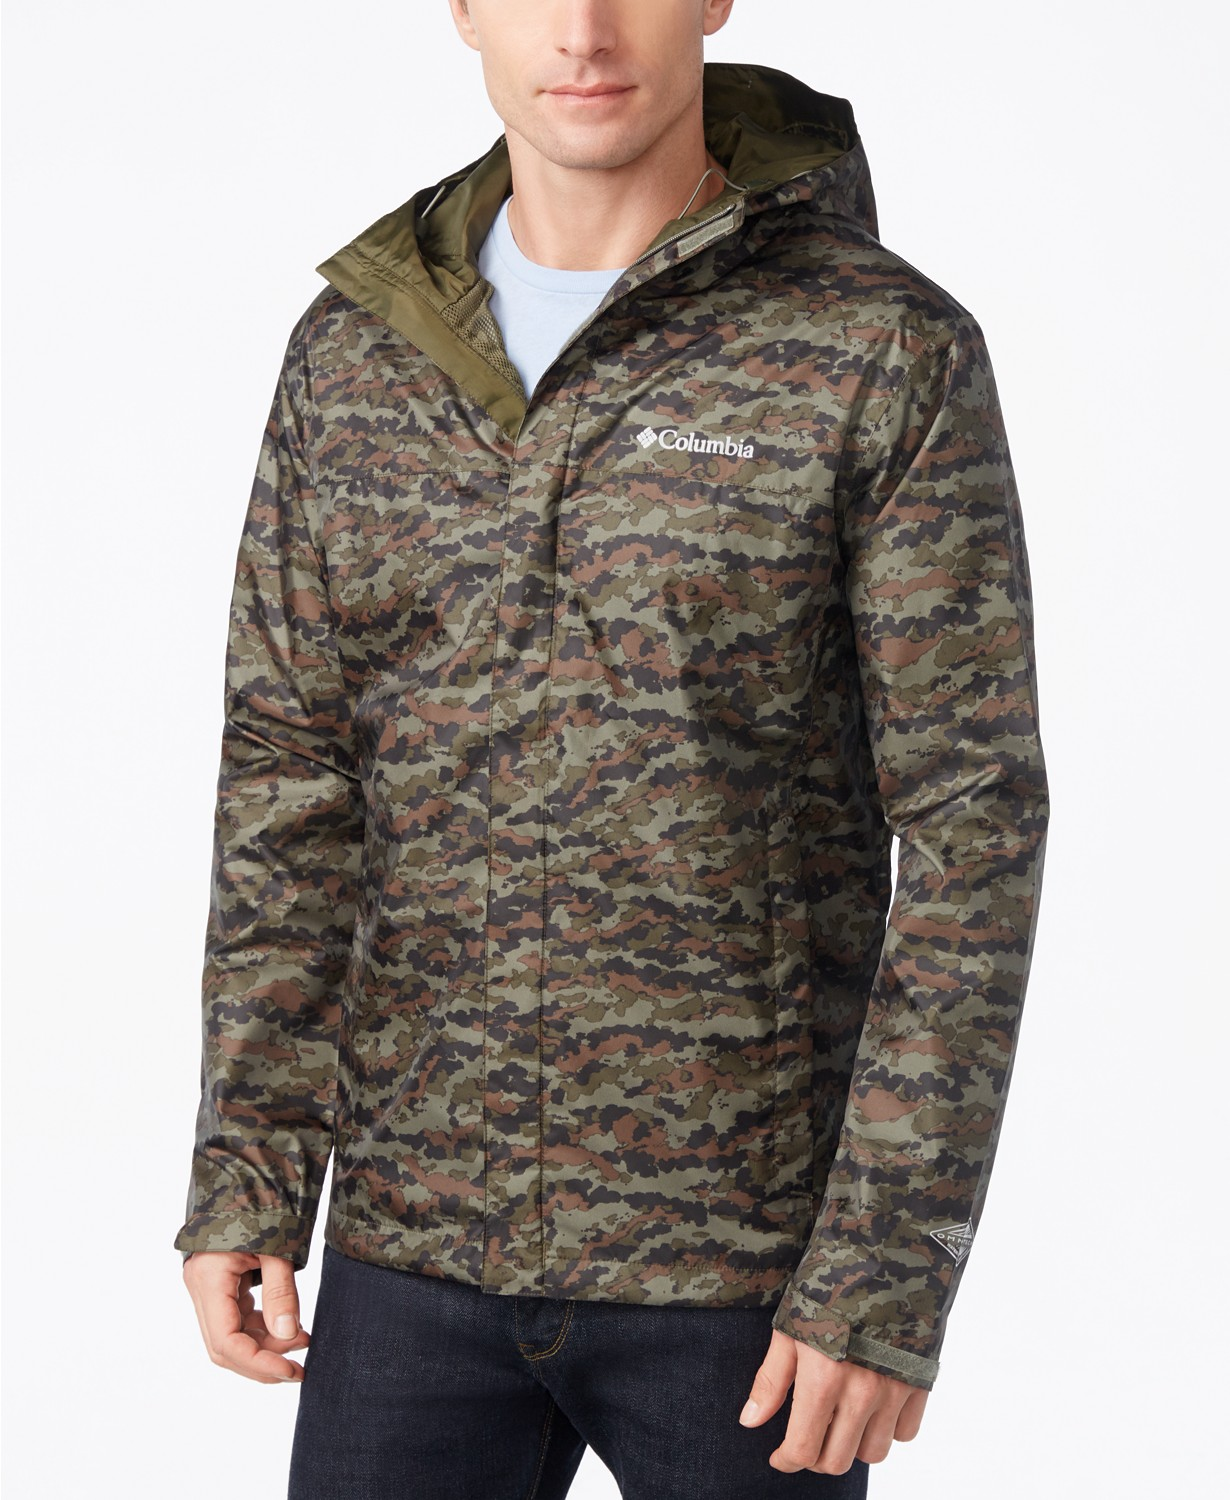 Columbia Watertight Packable Camouflage Men's Jacket